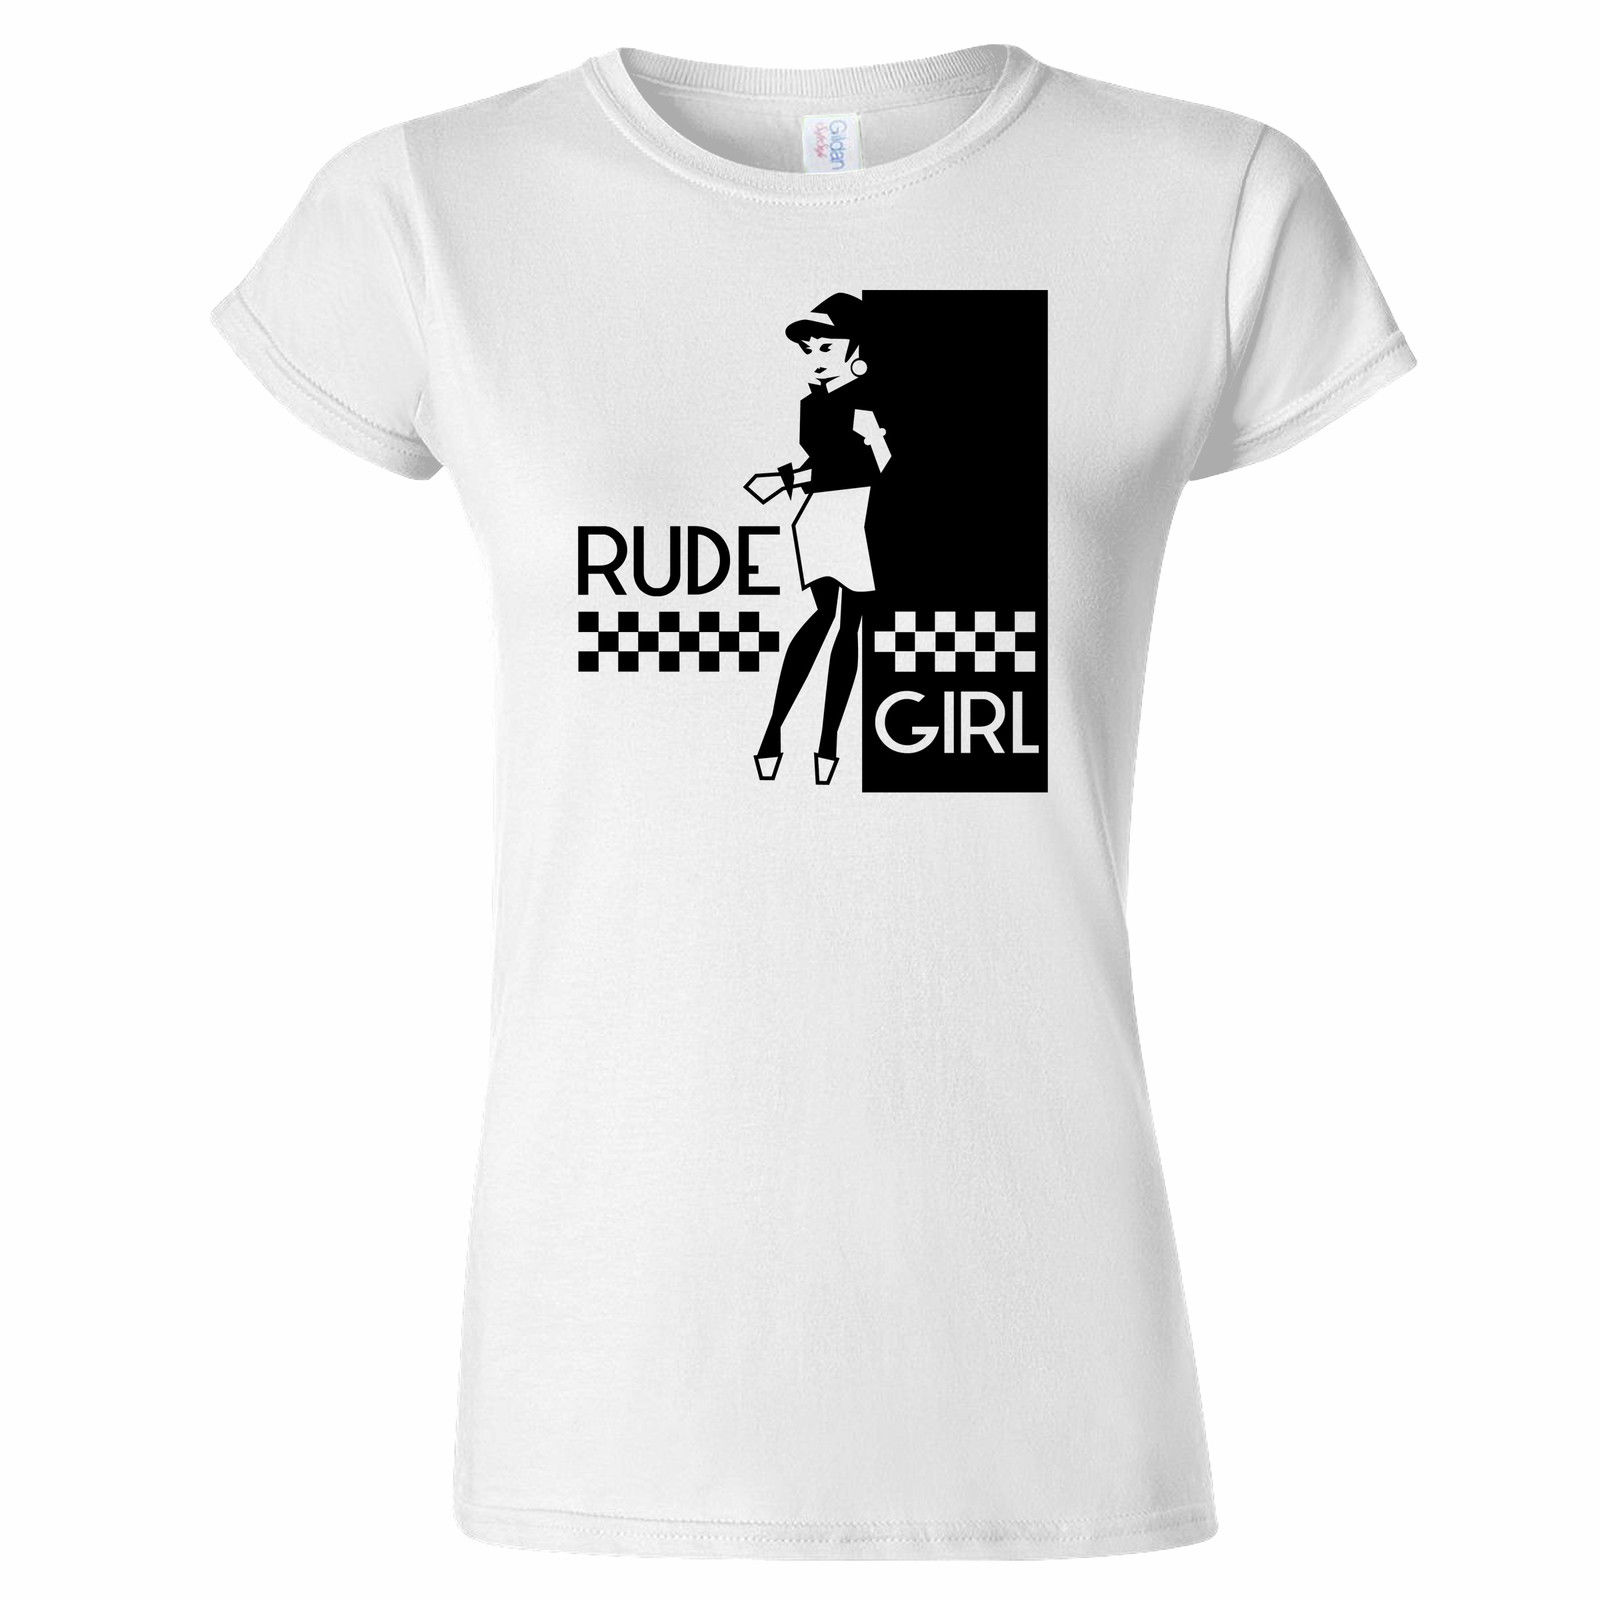 Beat Betty Rude Girl (2) Womens 2 Tone Two Tone Suggs T Shirt Specials Ska Branded 100 % Cotton Organic Cotton T-Shirt